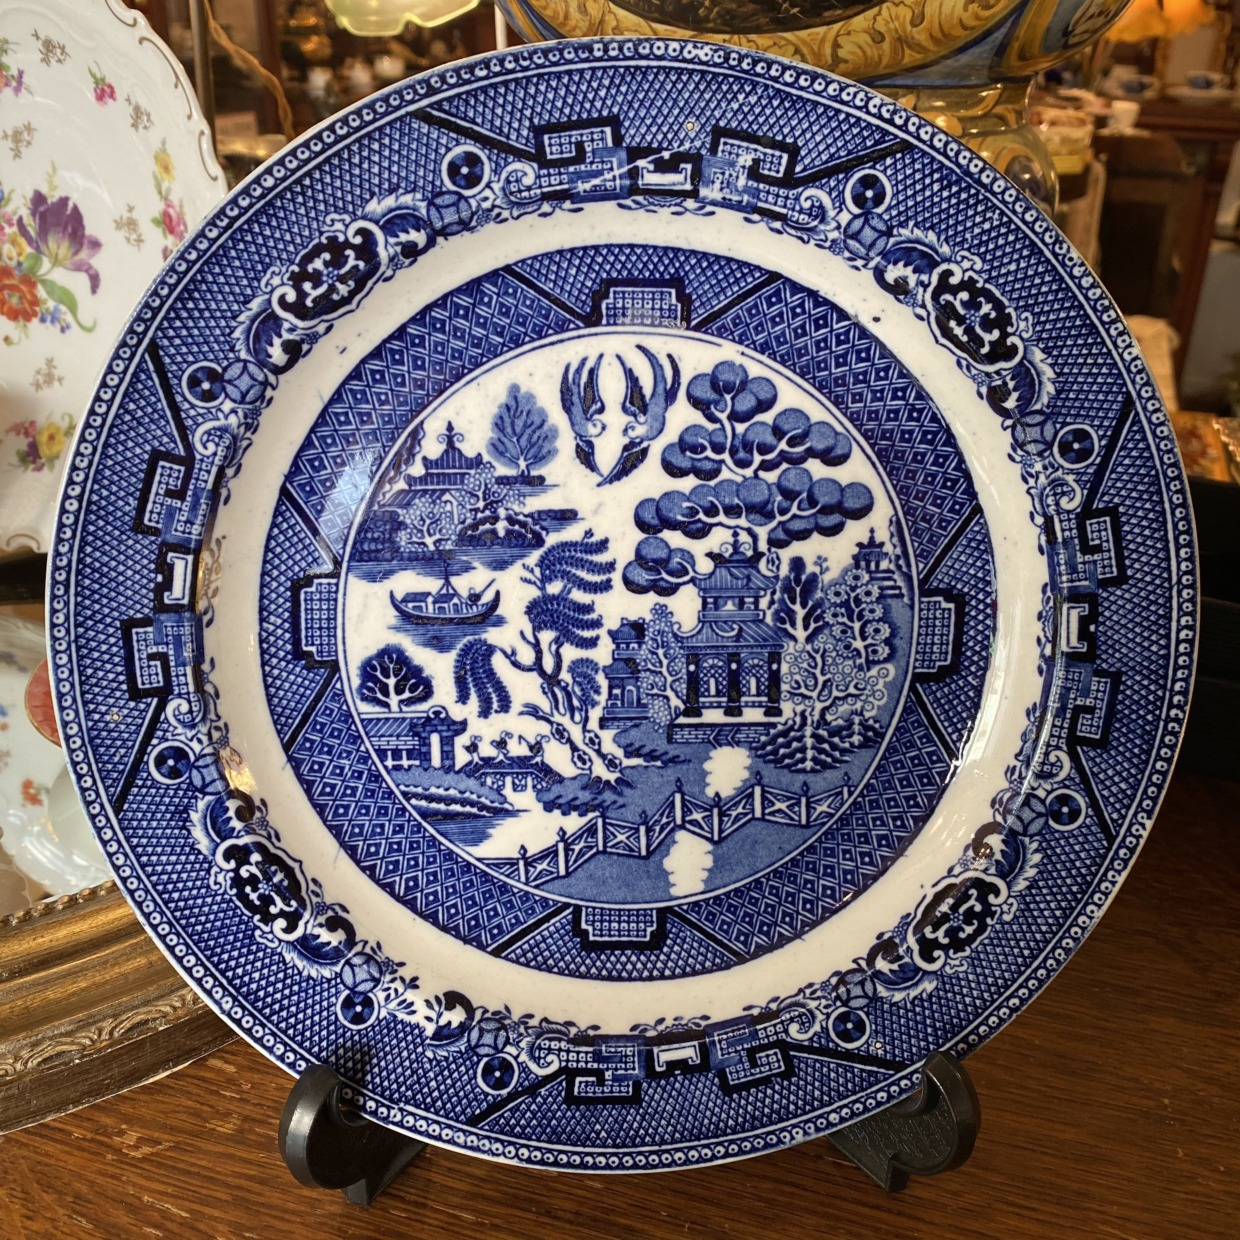 Blue Willow Pattern ウィローパターン アンティーク皿